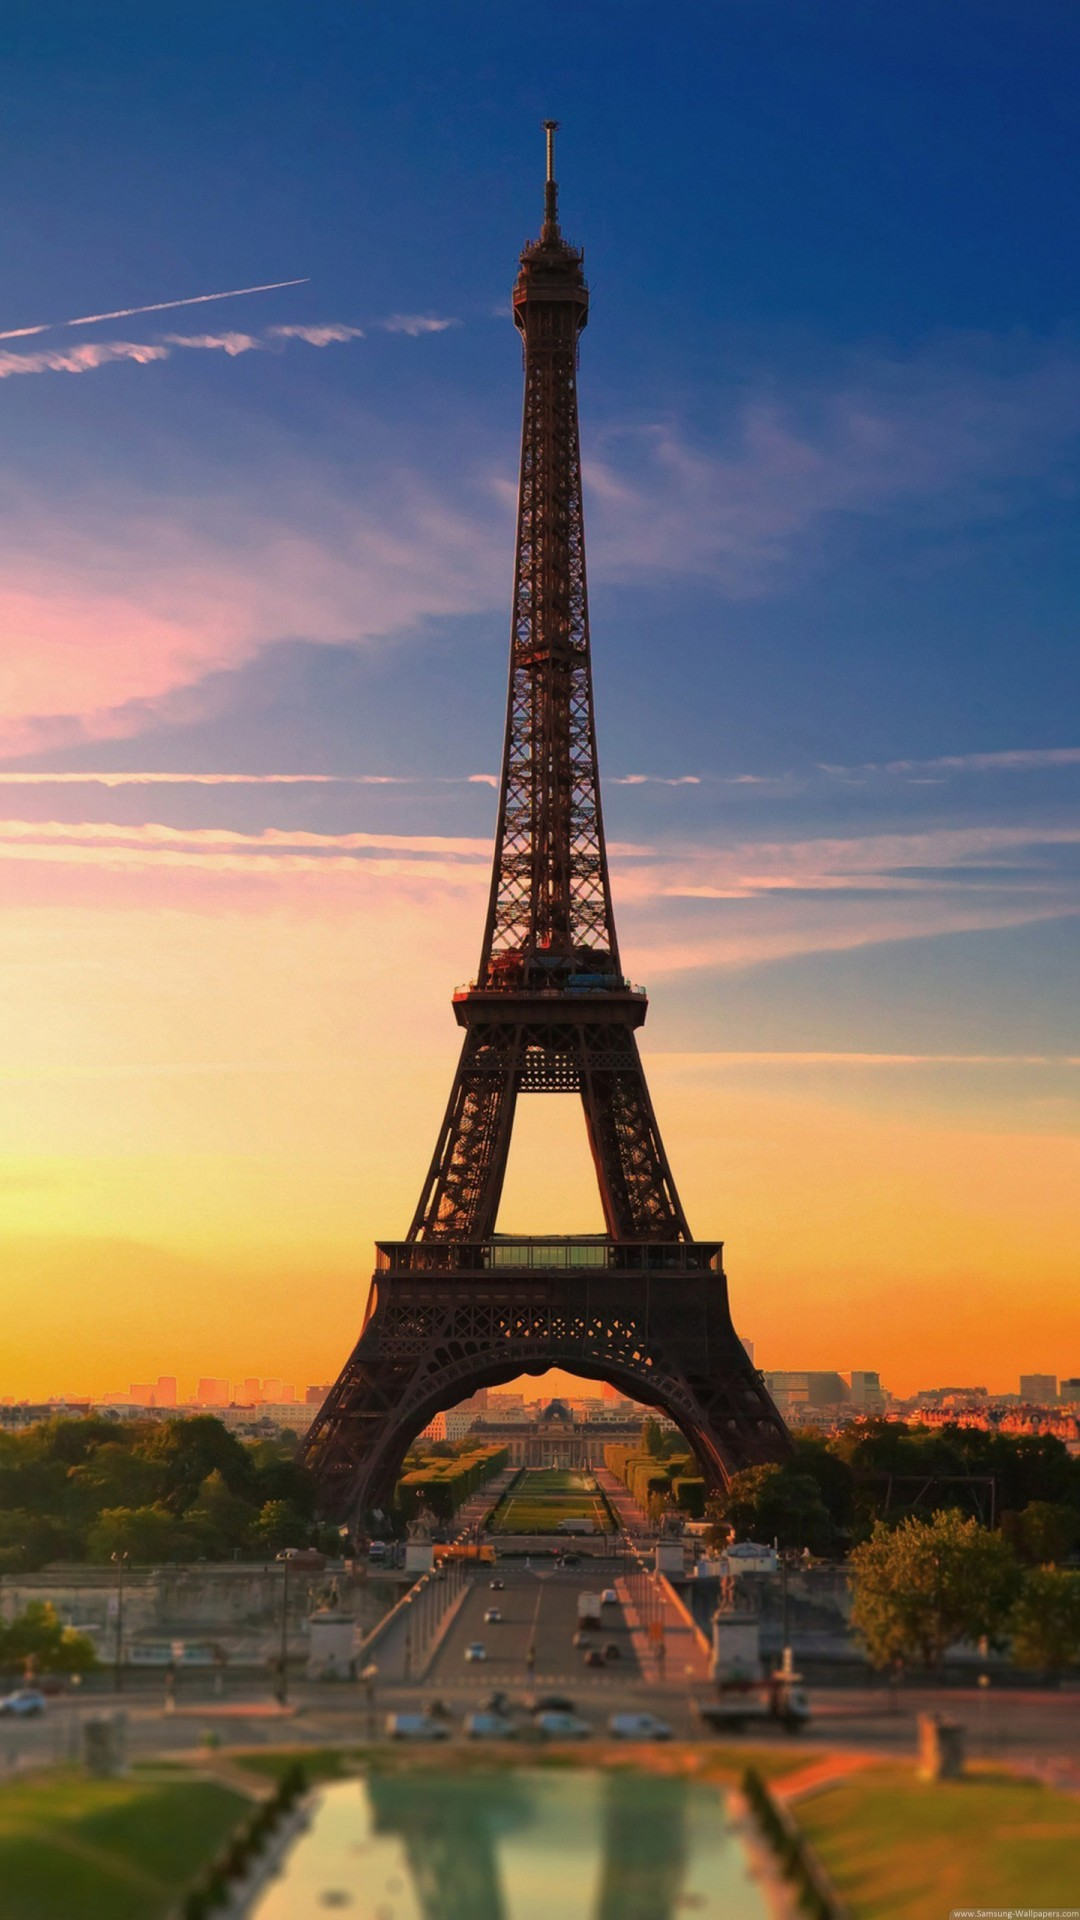 Paris HD Wallpapers for iPhone 6 Plus | Wallpapers.Pictures